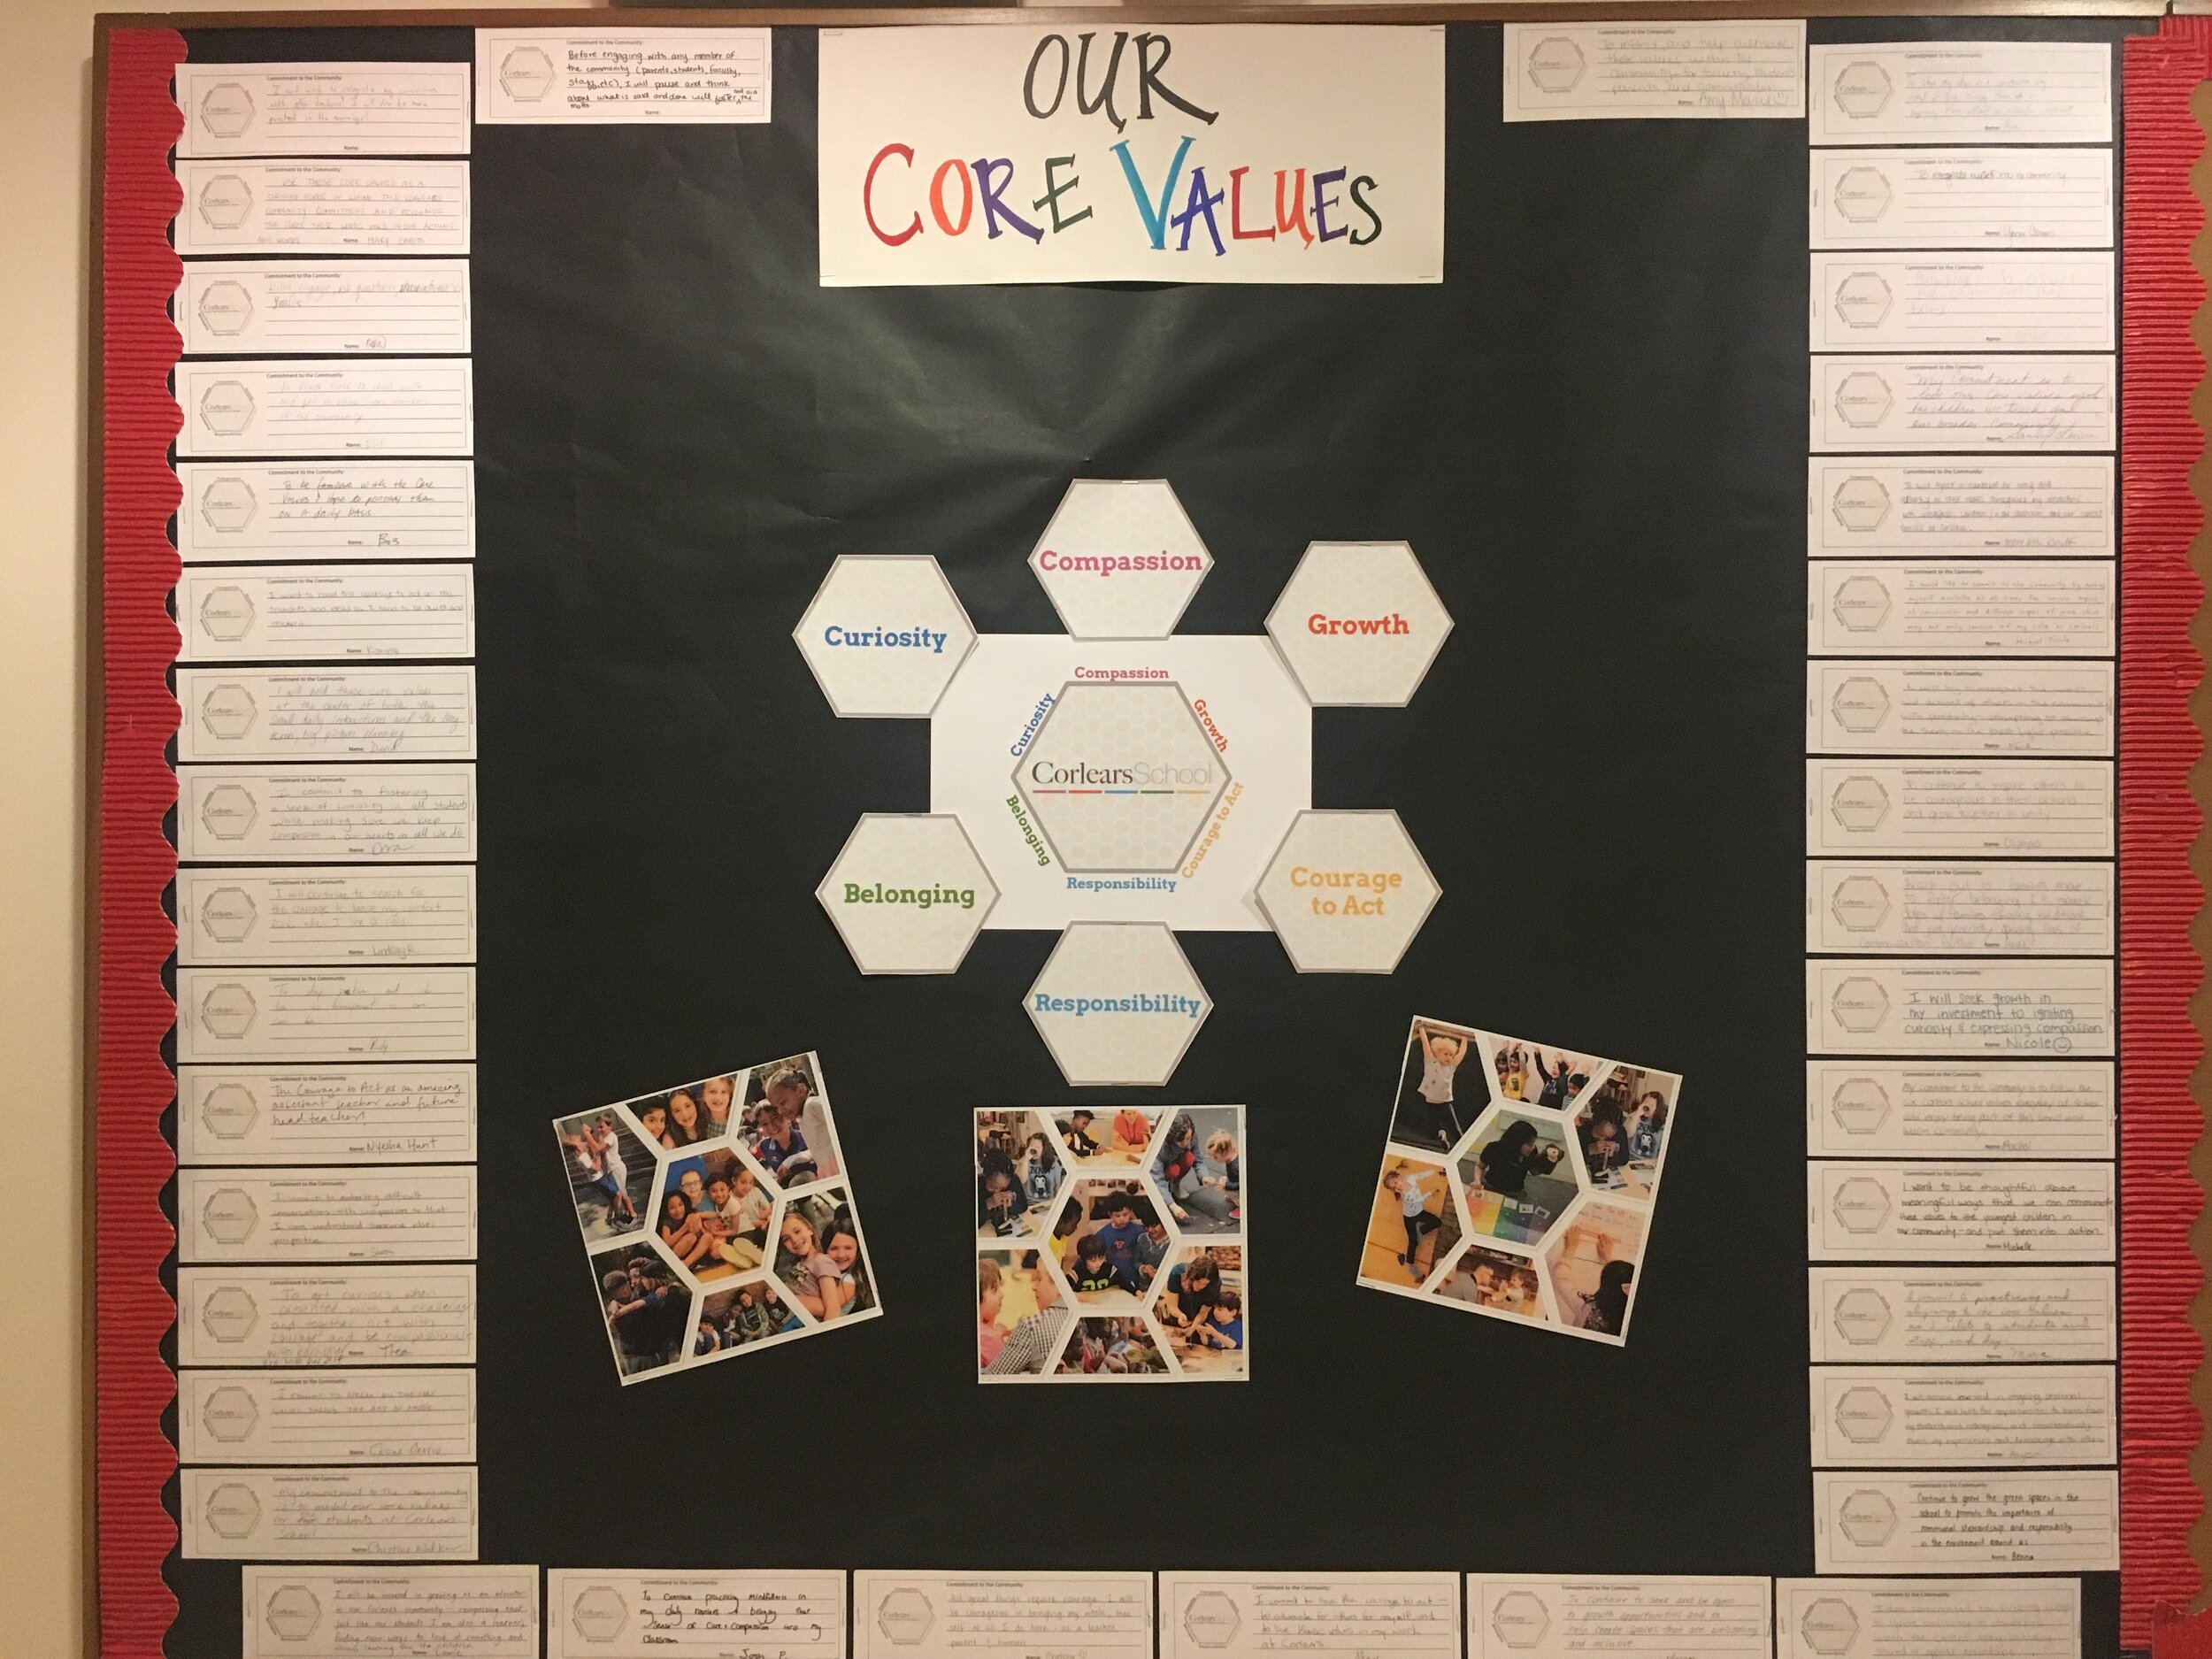 A bulletin board displaying faculty and staff's commitments to living and upholding the values at Corlears.